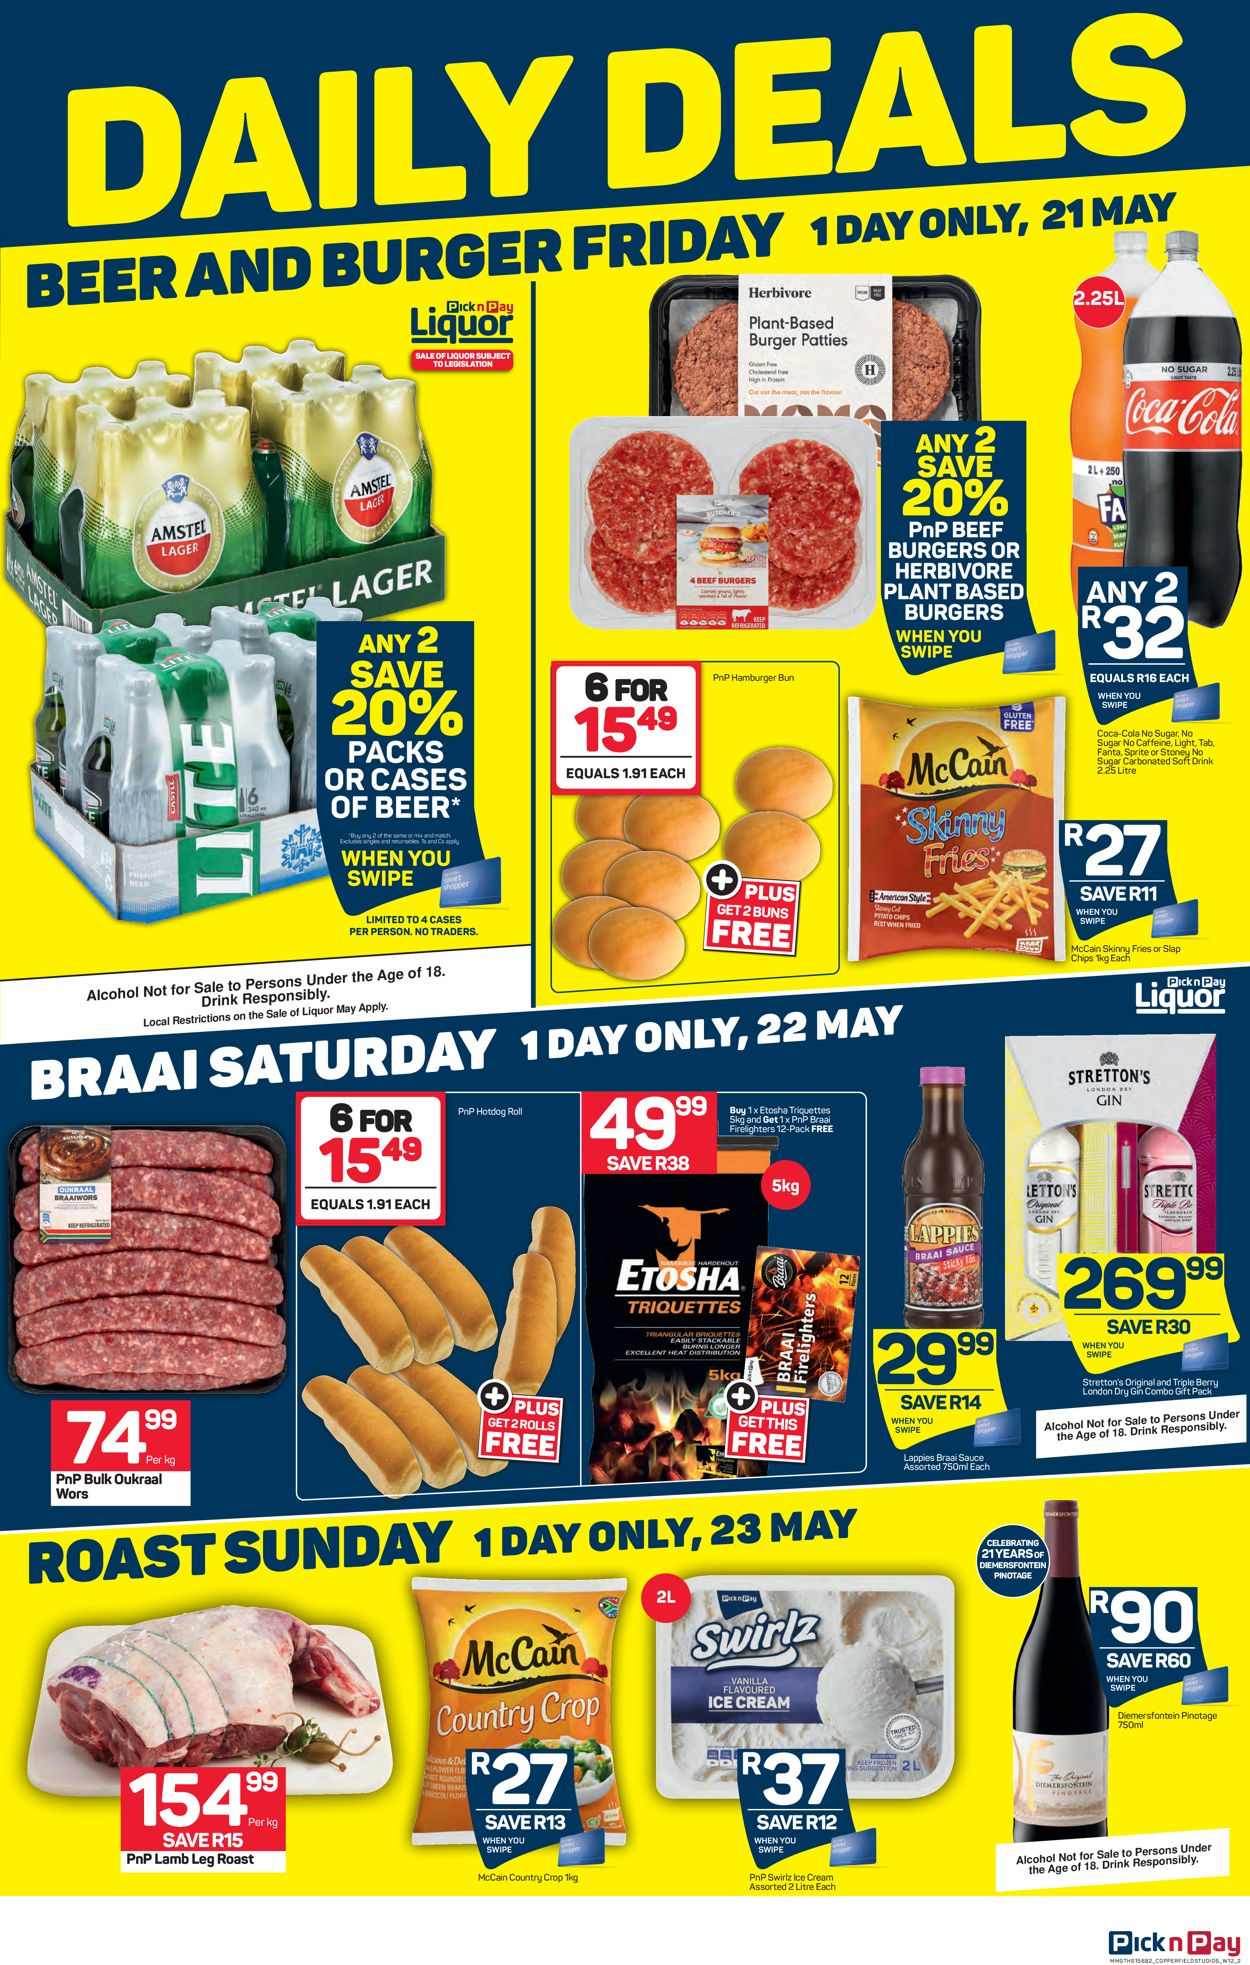 Pick n Pay Catalogue - 2021/05/20-2021/05/23 (Page 2)